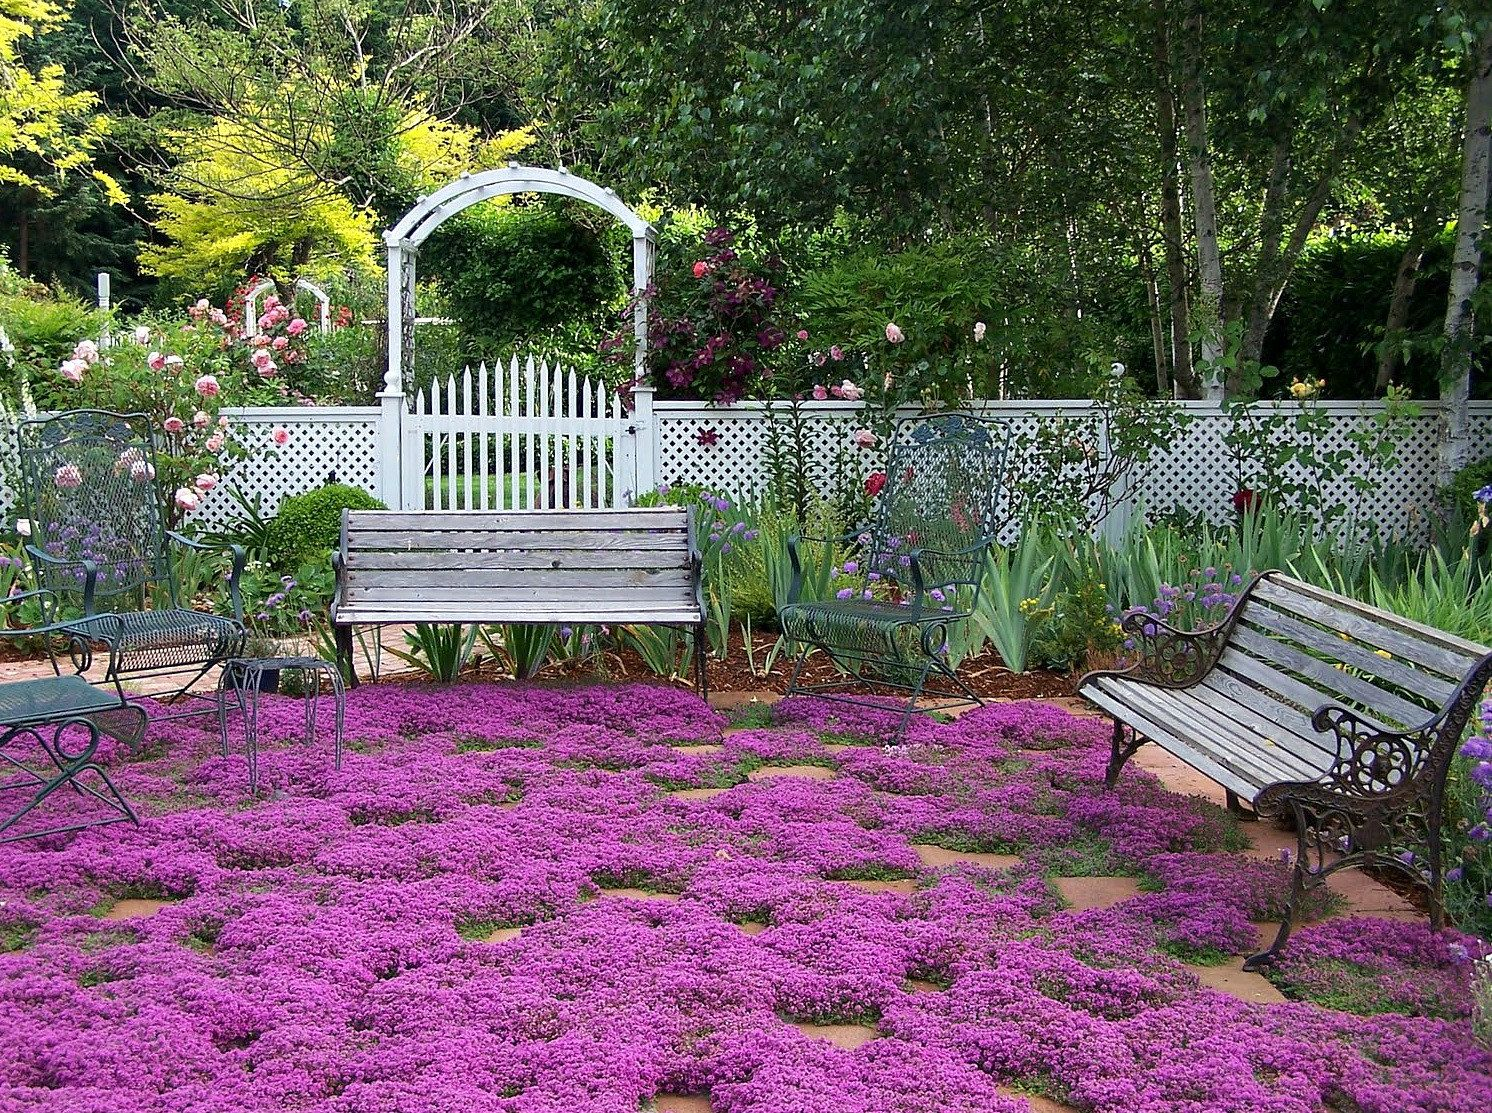 How to plant ground cover between pavers - 25 Best Ideas About Purple Ground Cover On Pinterest Garden Pavers White Flower Pictures And Purple Plants